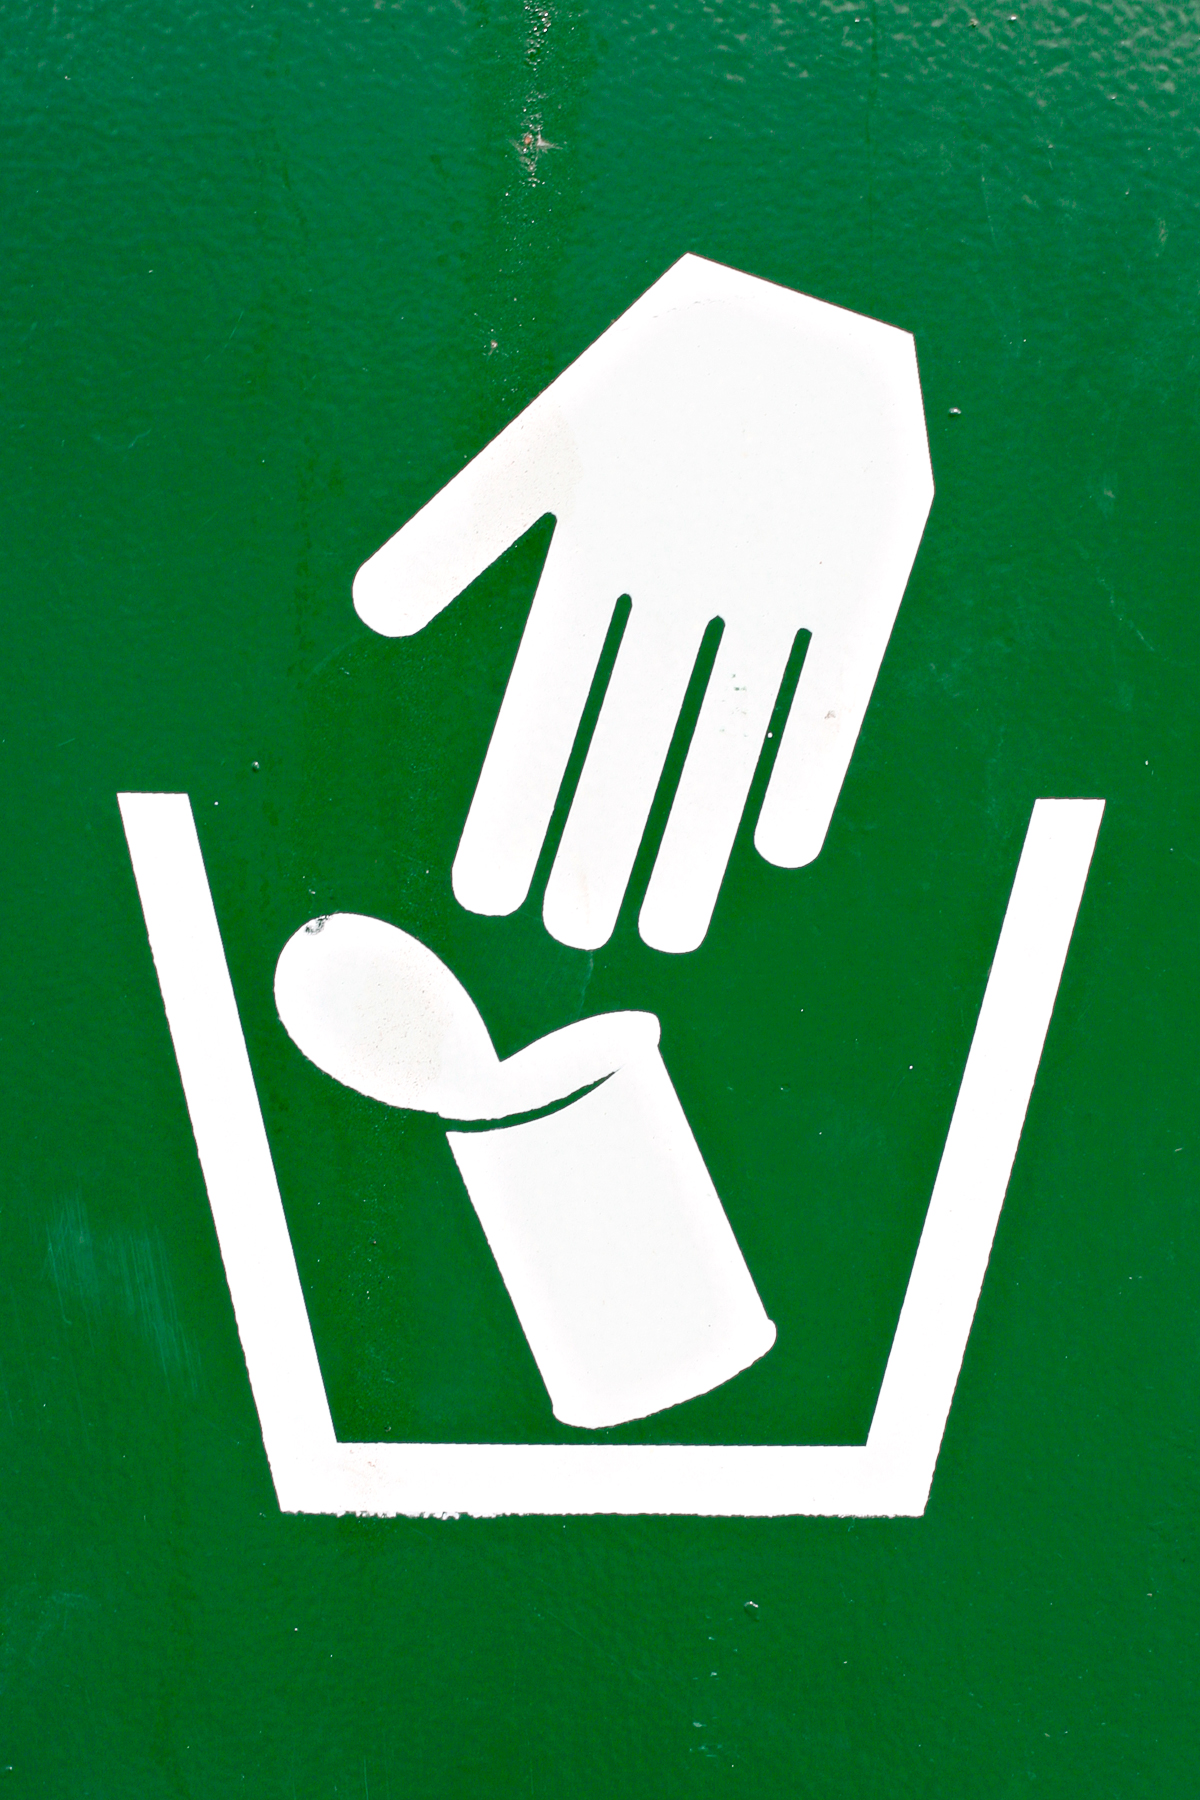 Garbage Disposal Sign, Backdrop, Resource, Litter, Paint, HQ Photo